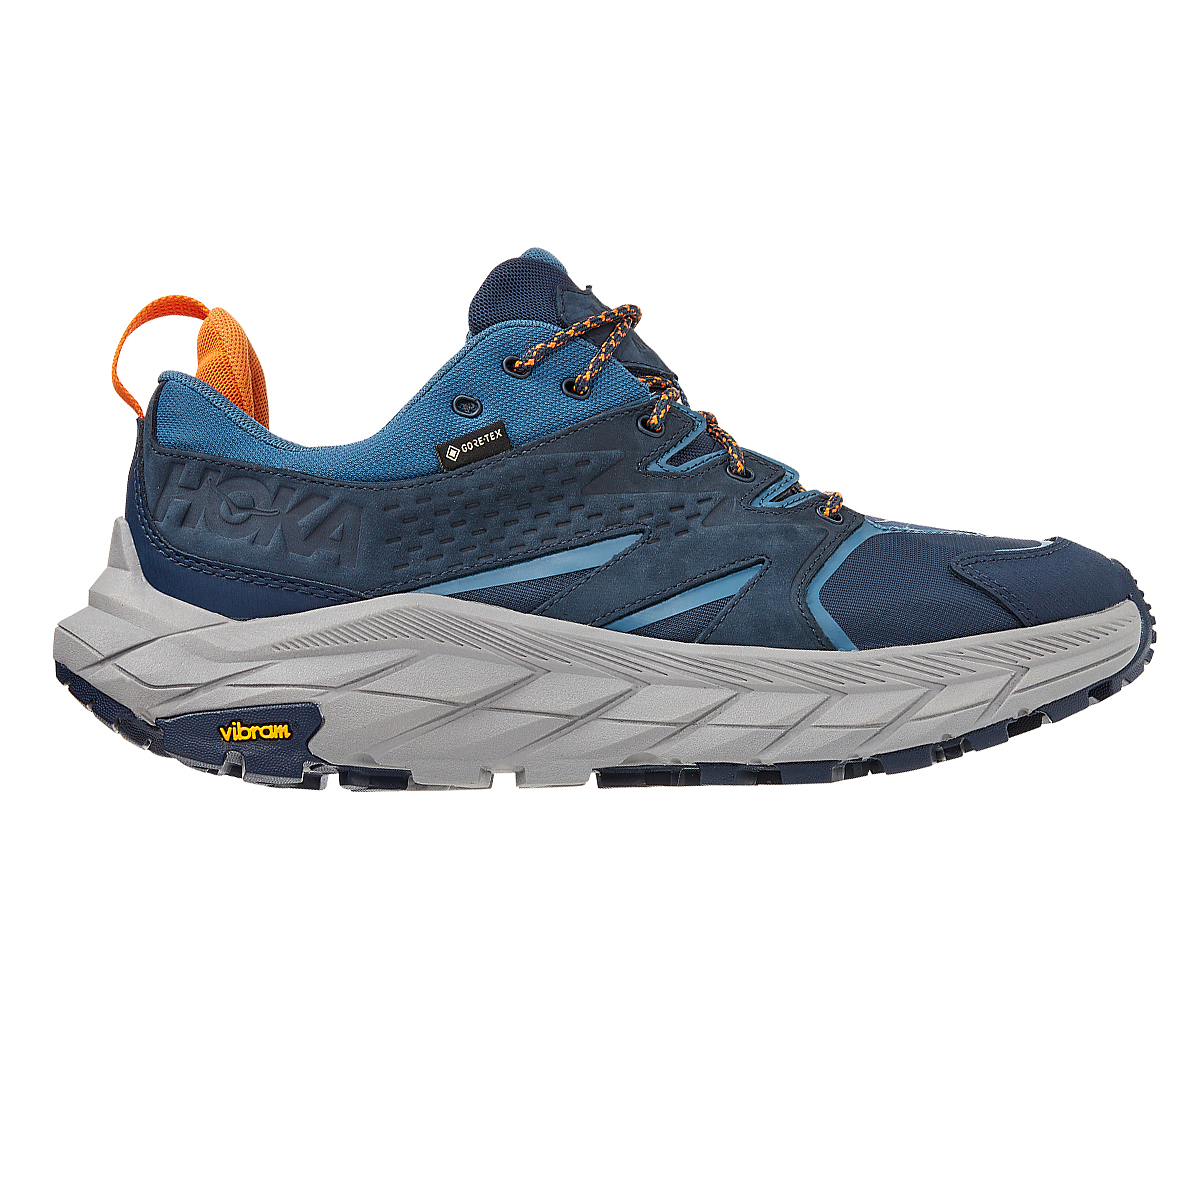 Men's Hoka One One Anacapa Low Gore-Tex Trail Running Shoe - Color: Outer Space/Real Teal - Size: 7 - Width: Regular, Outer Space/Real Teal, large, image 1